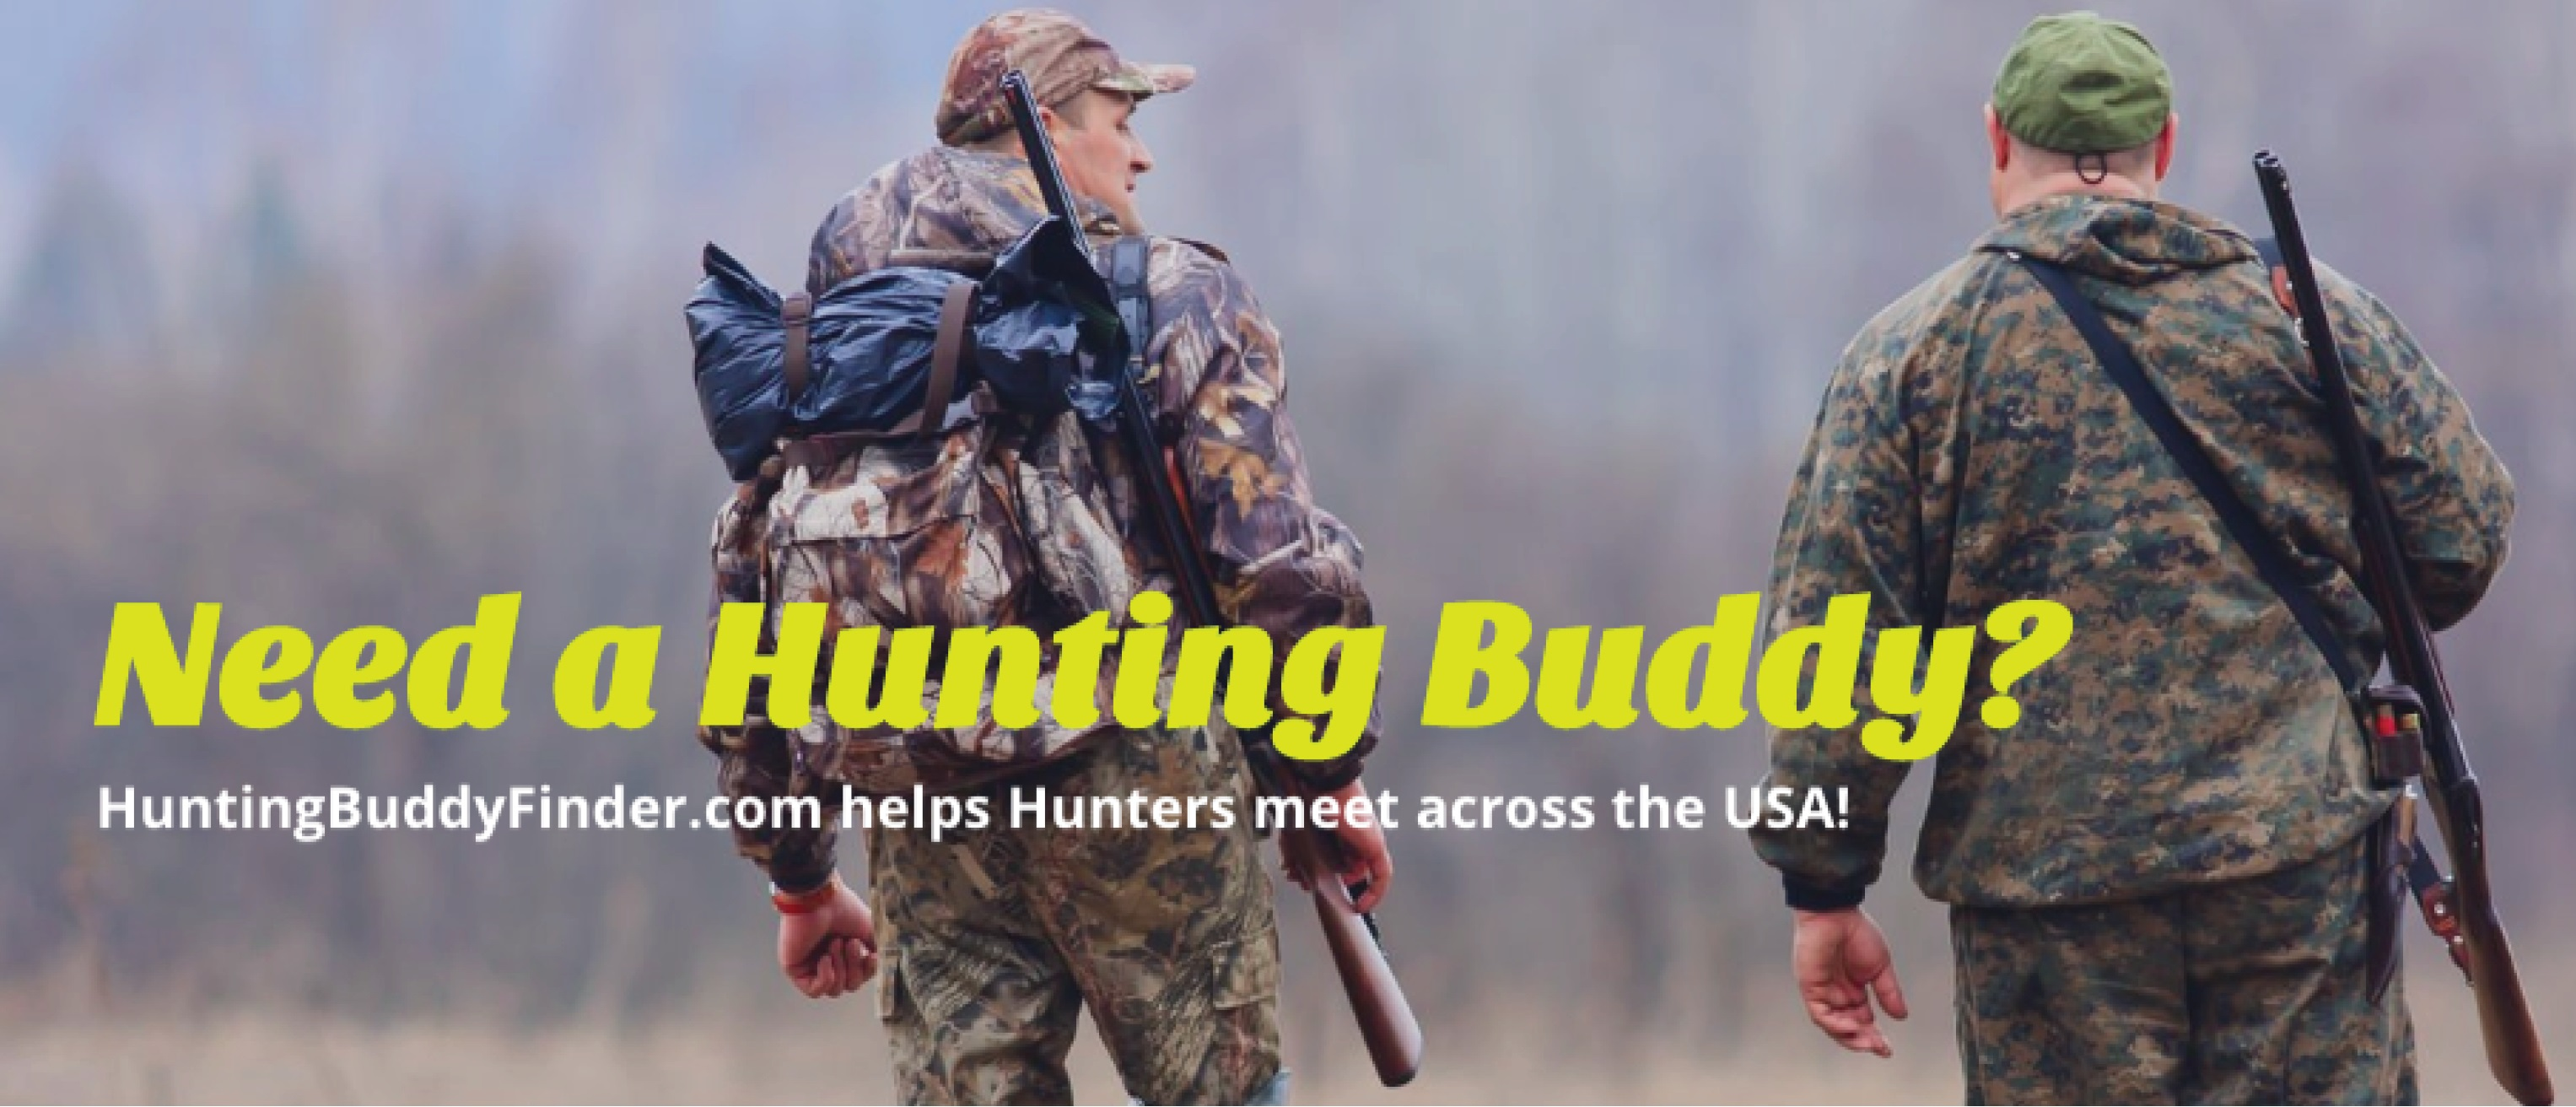 Need_a_Hunting_Buddy